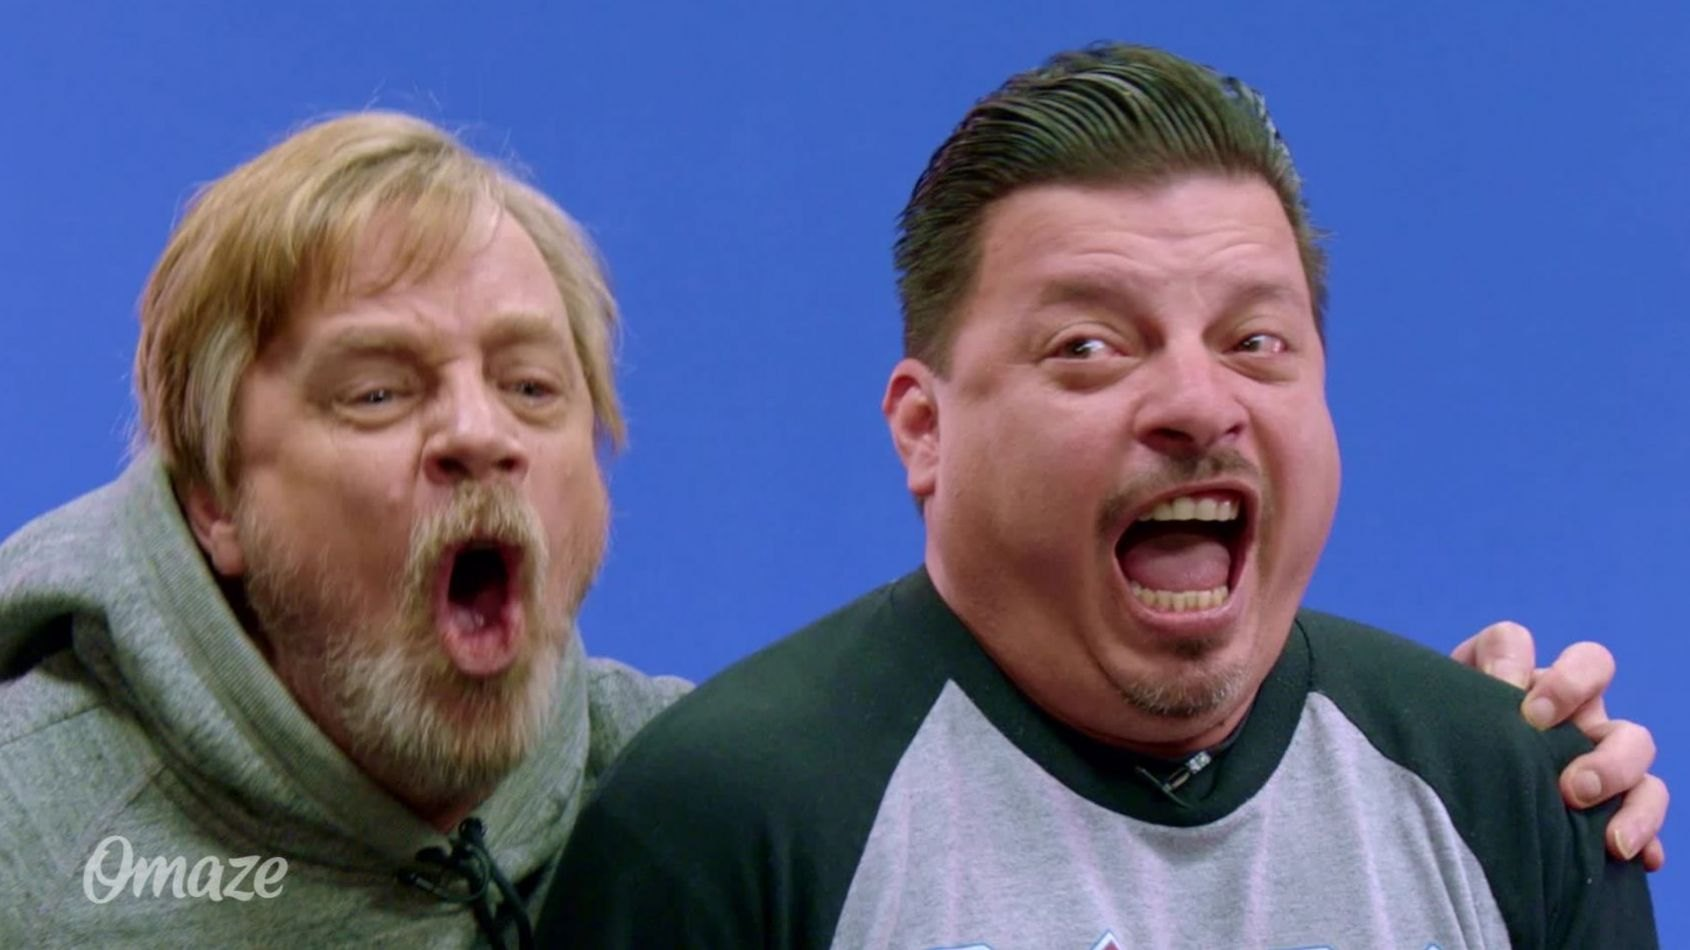 Mark Hamill surprend (encore) des fans de Star Wars !